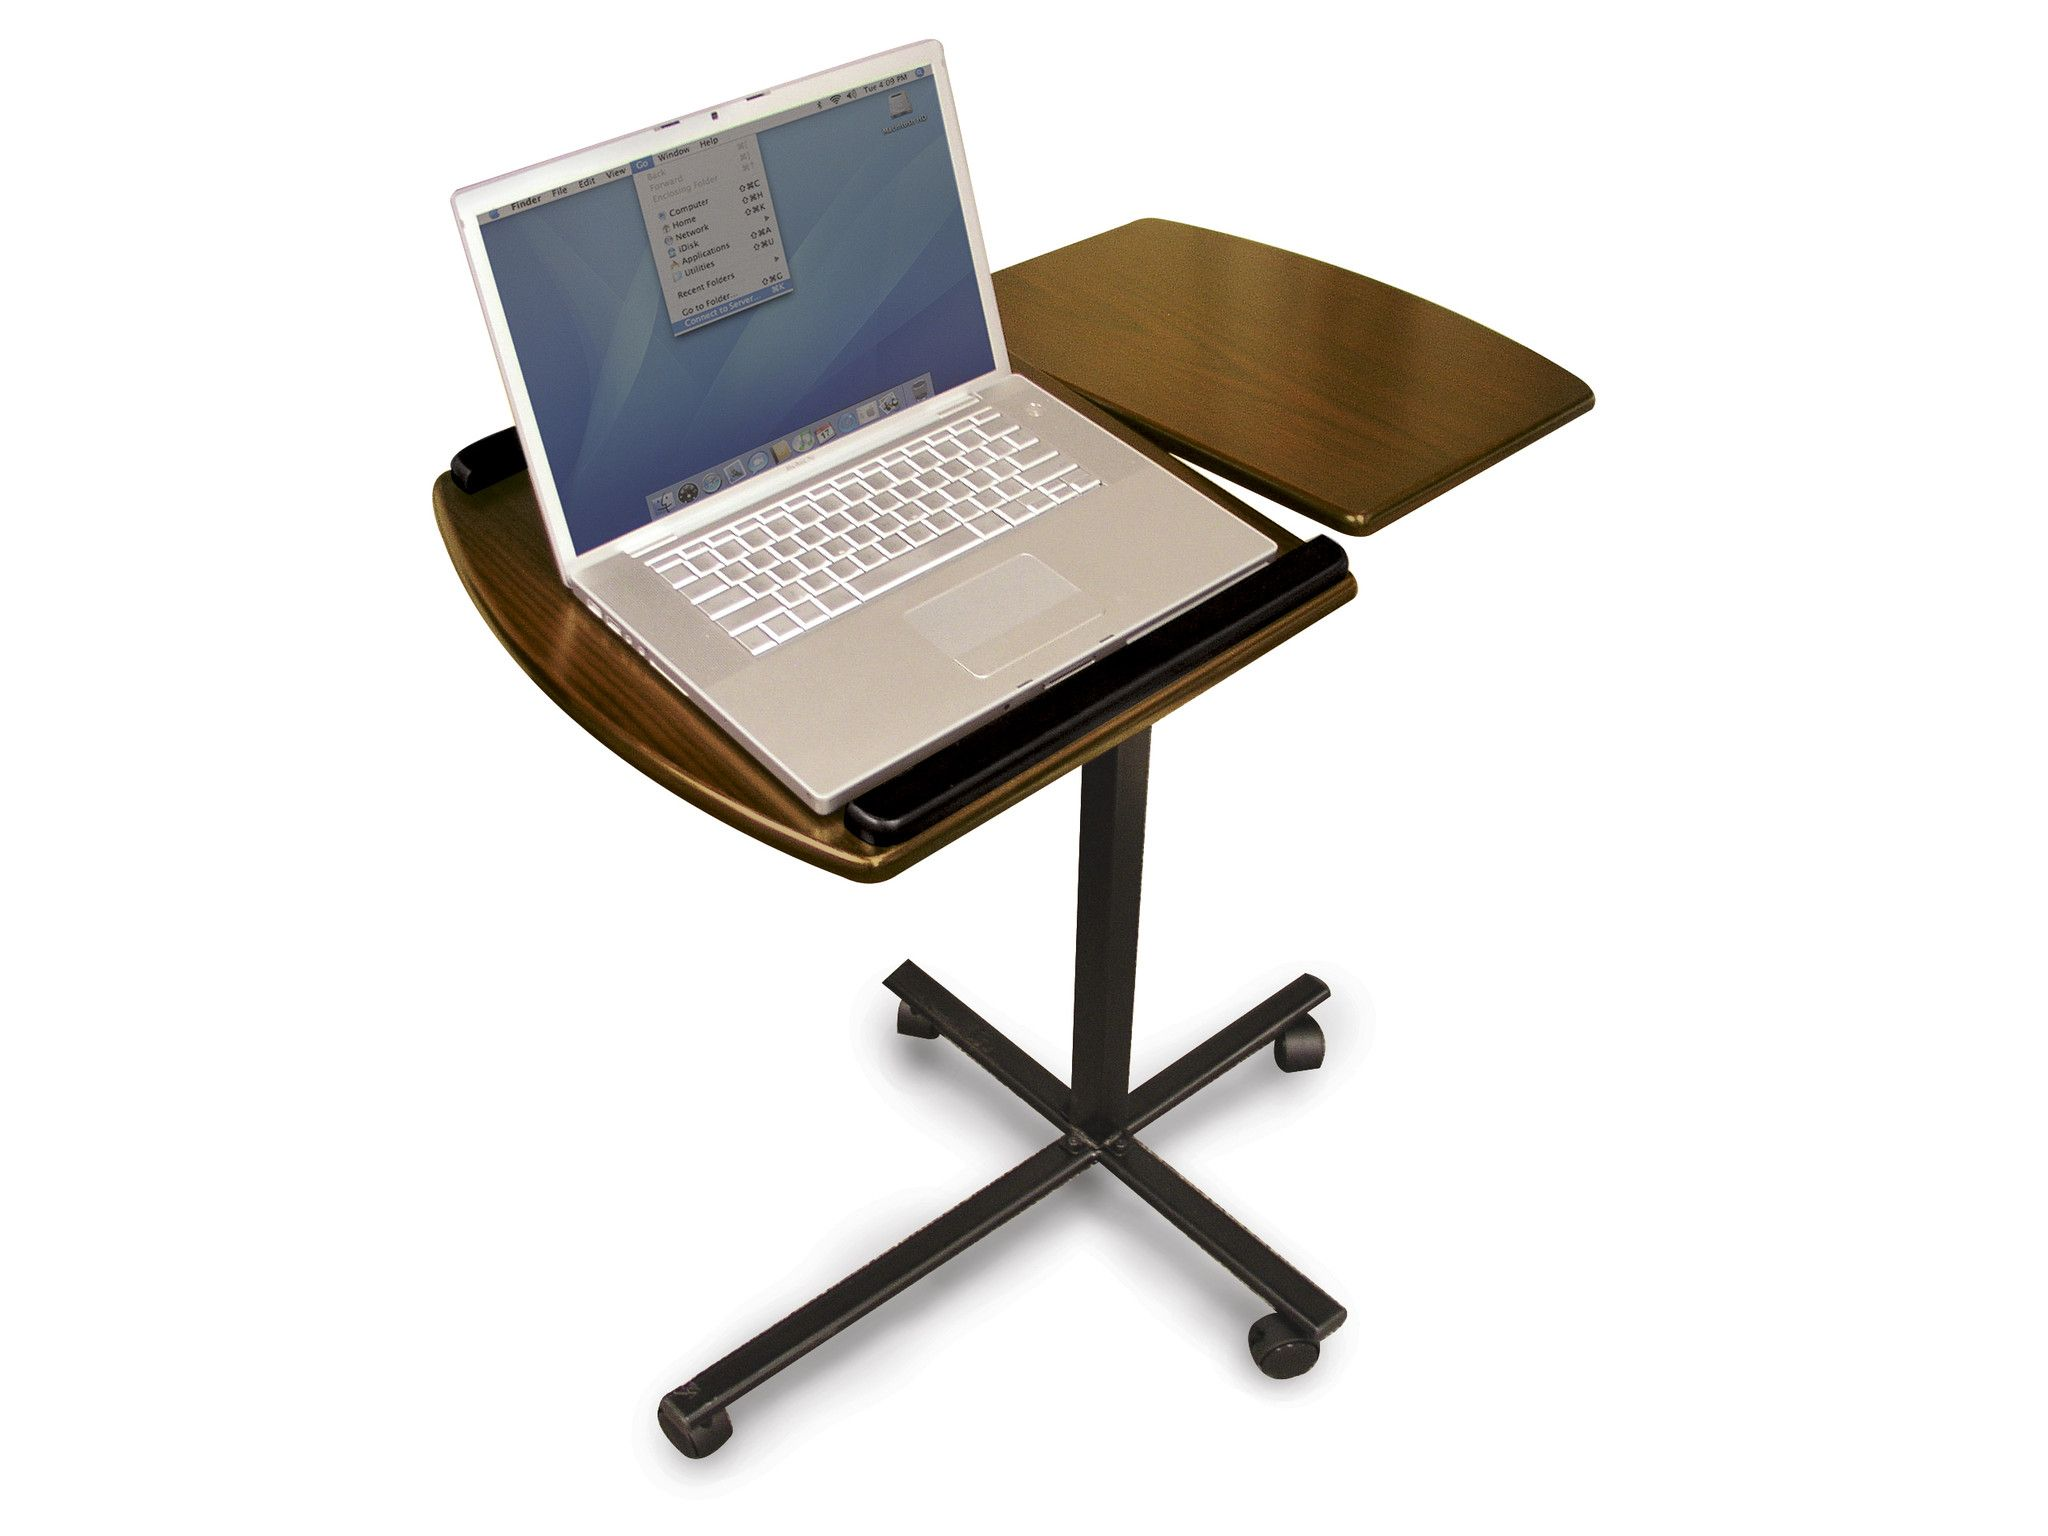 premium stand vektor portable desk designed versatility for magma laptop